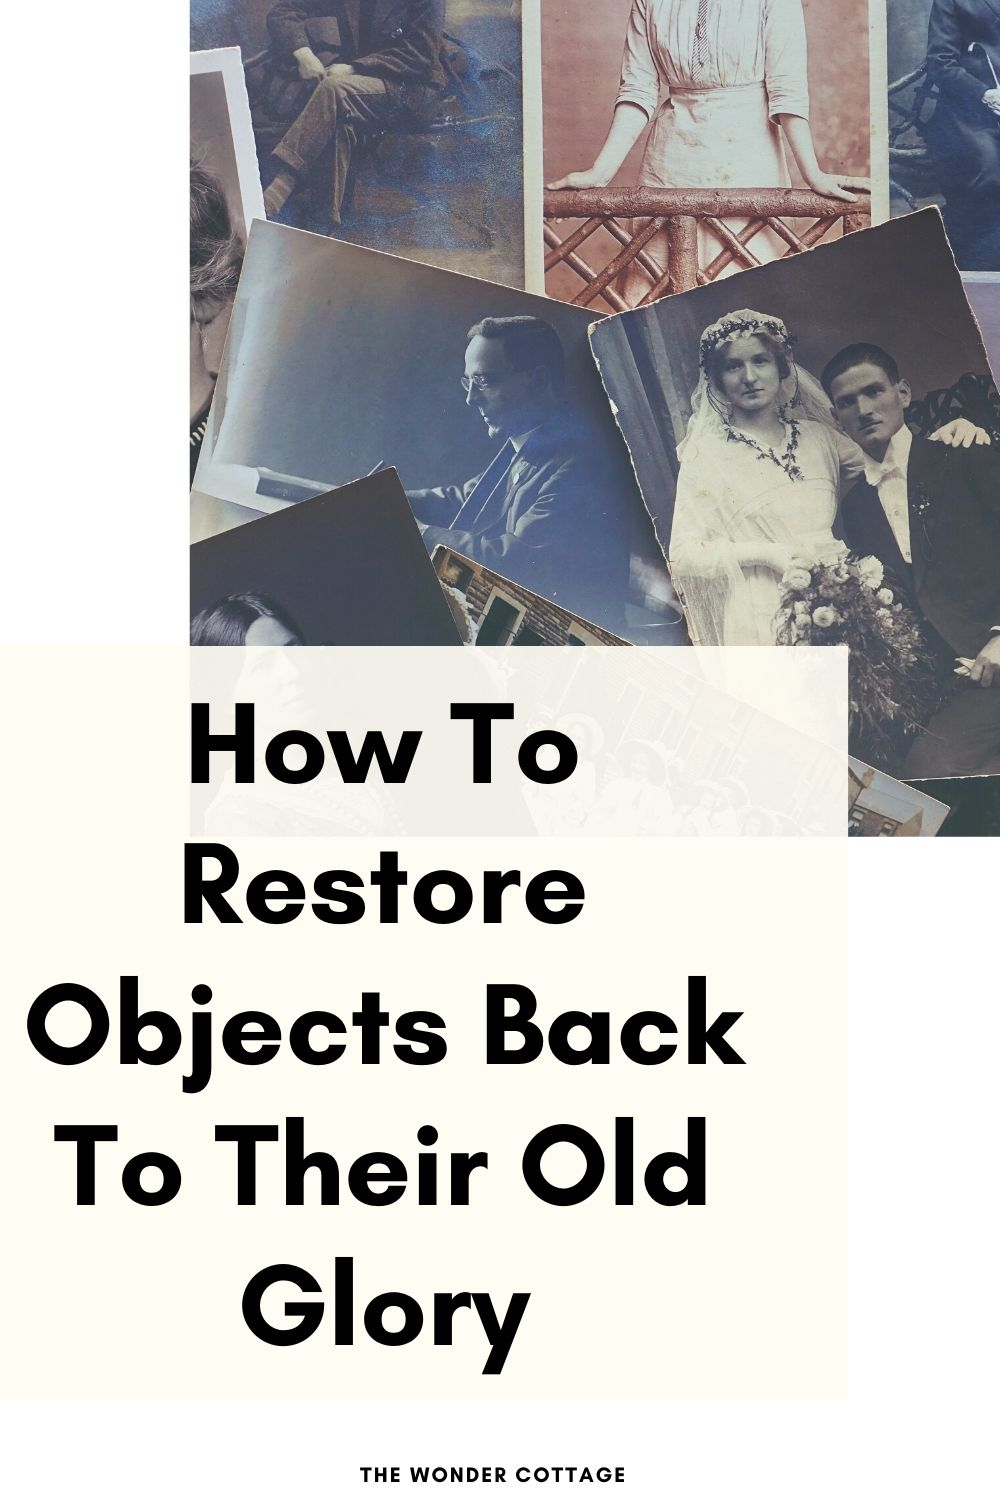 how to restore objects back to their glory